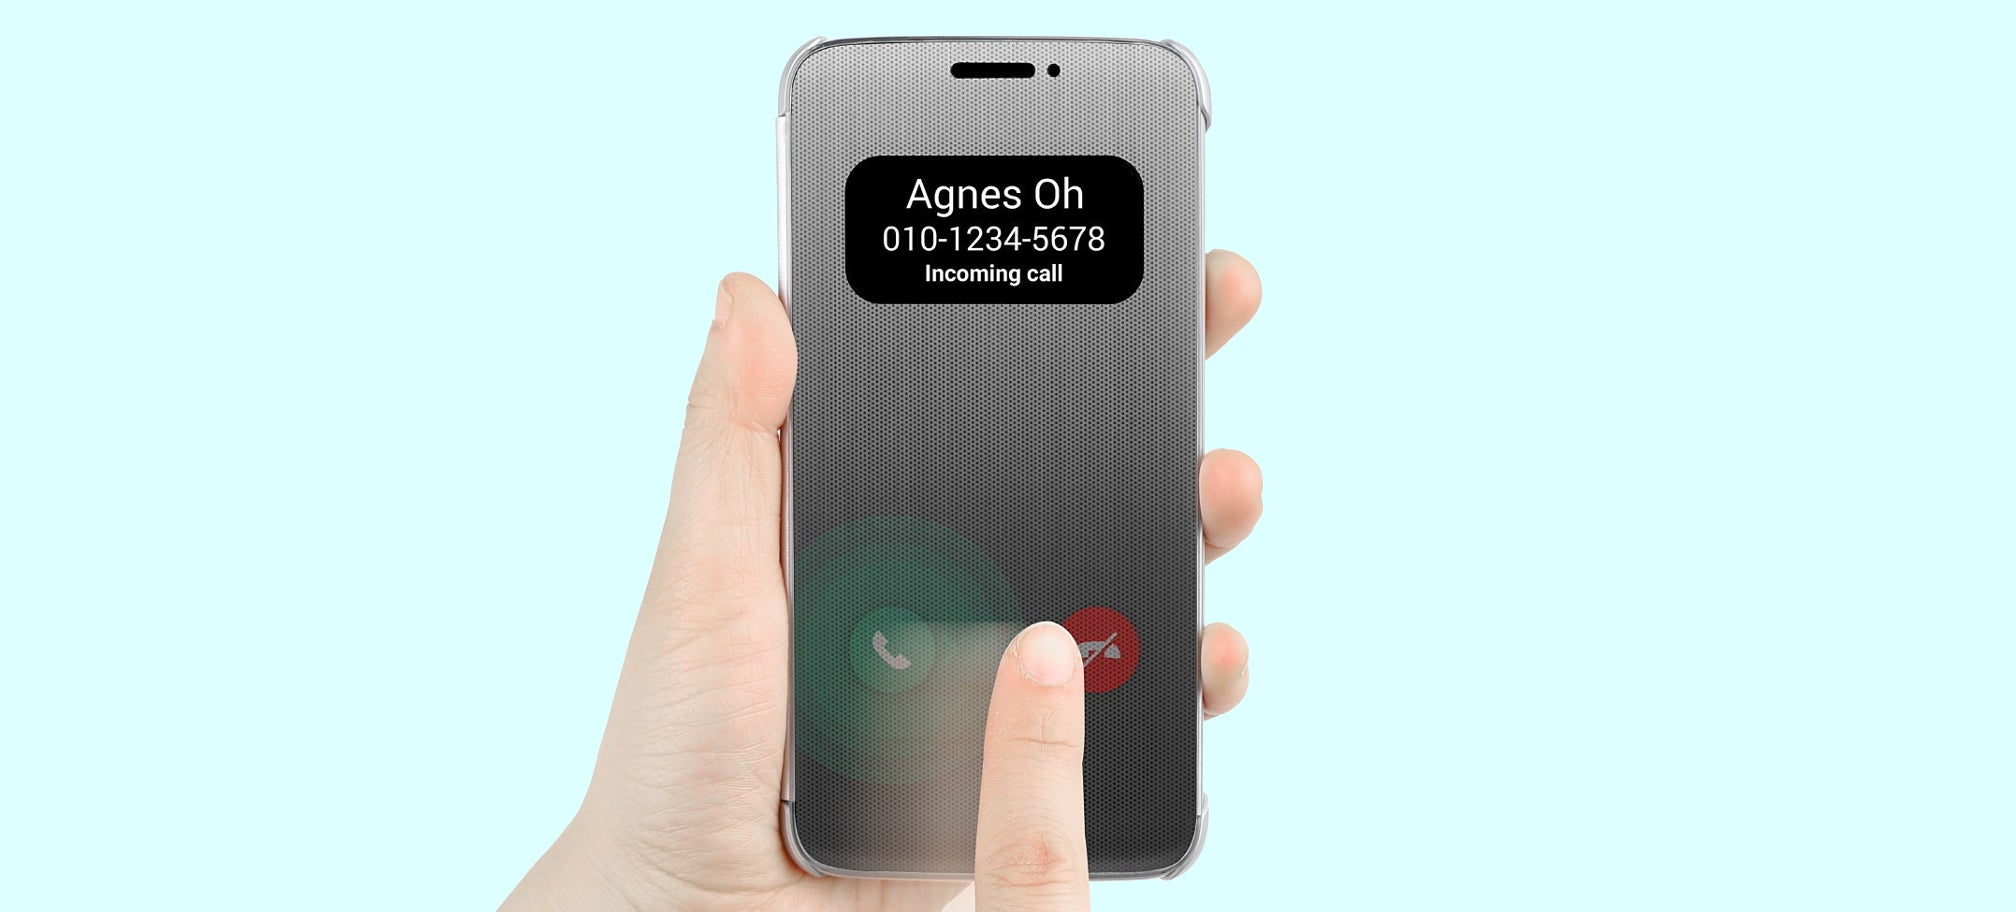 LG Just Launched This Case for Its G5 -- a Phone That Doesn't Yet Exist